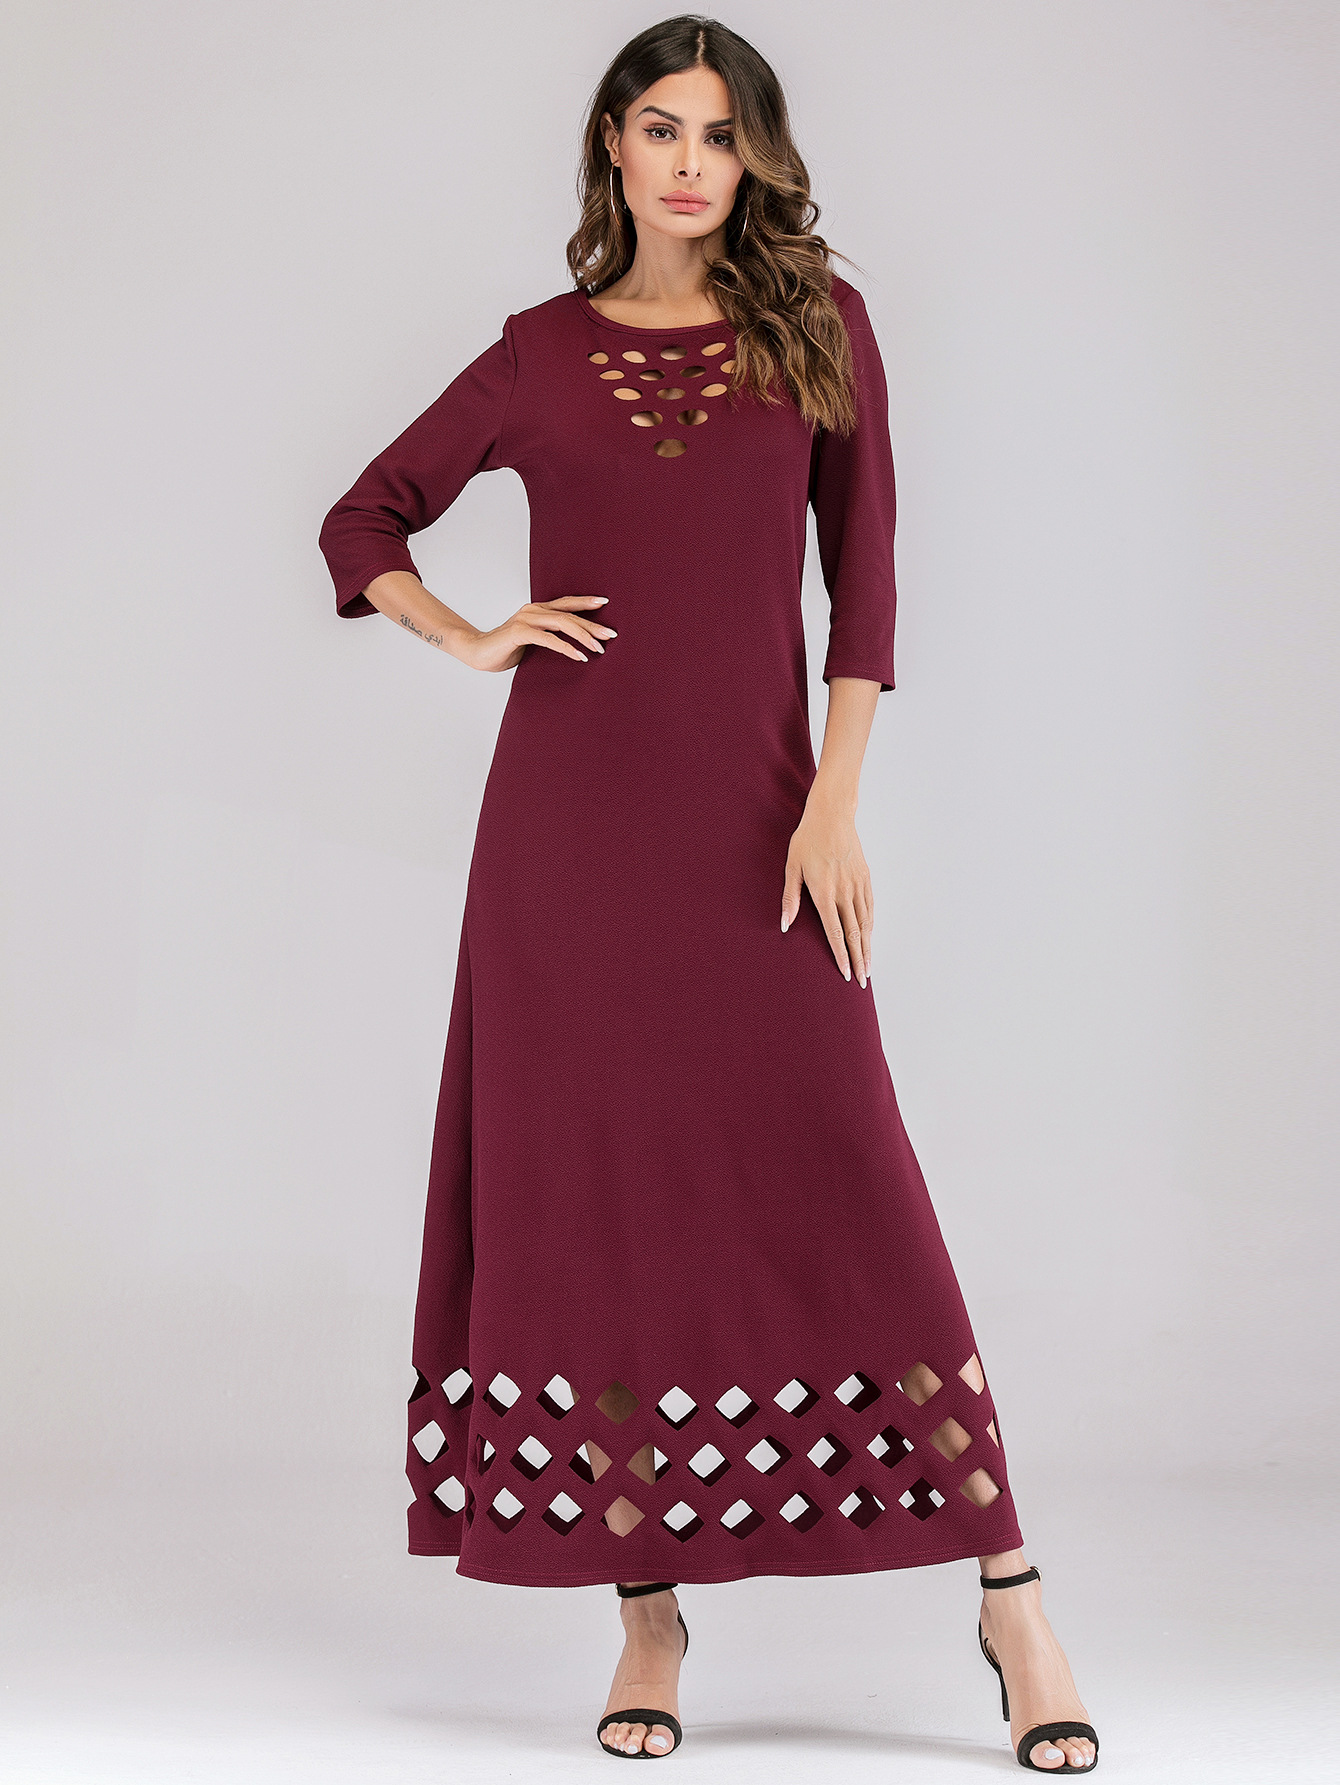 Fashion hollowed out floral seven-point sleeve dress NHLR155912